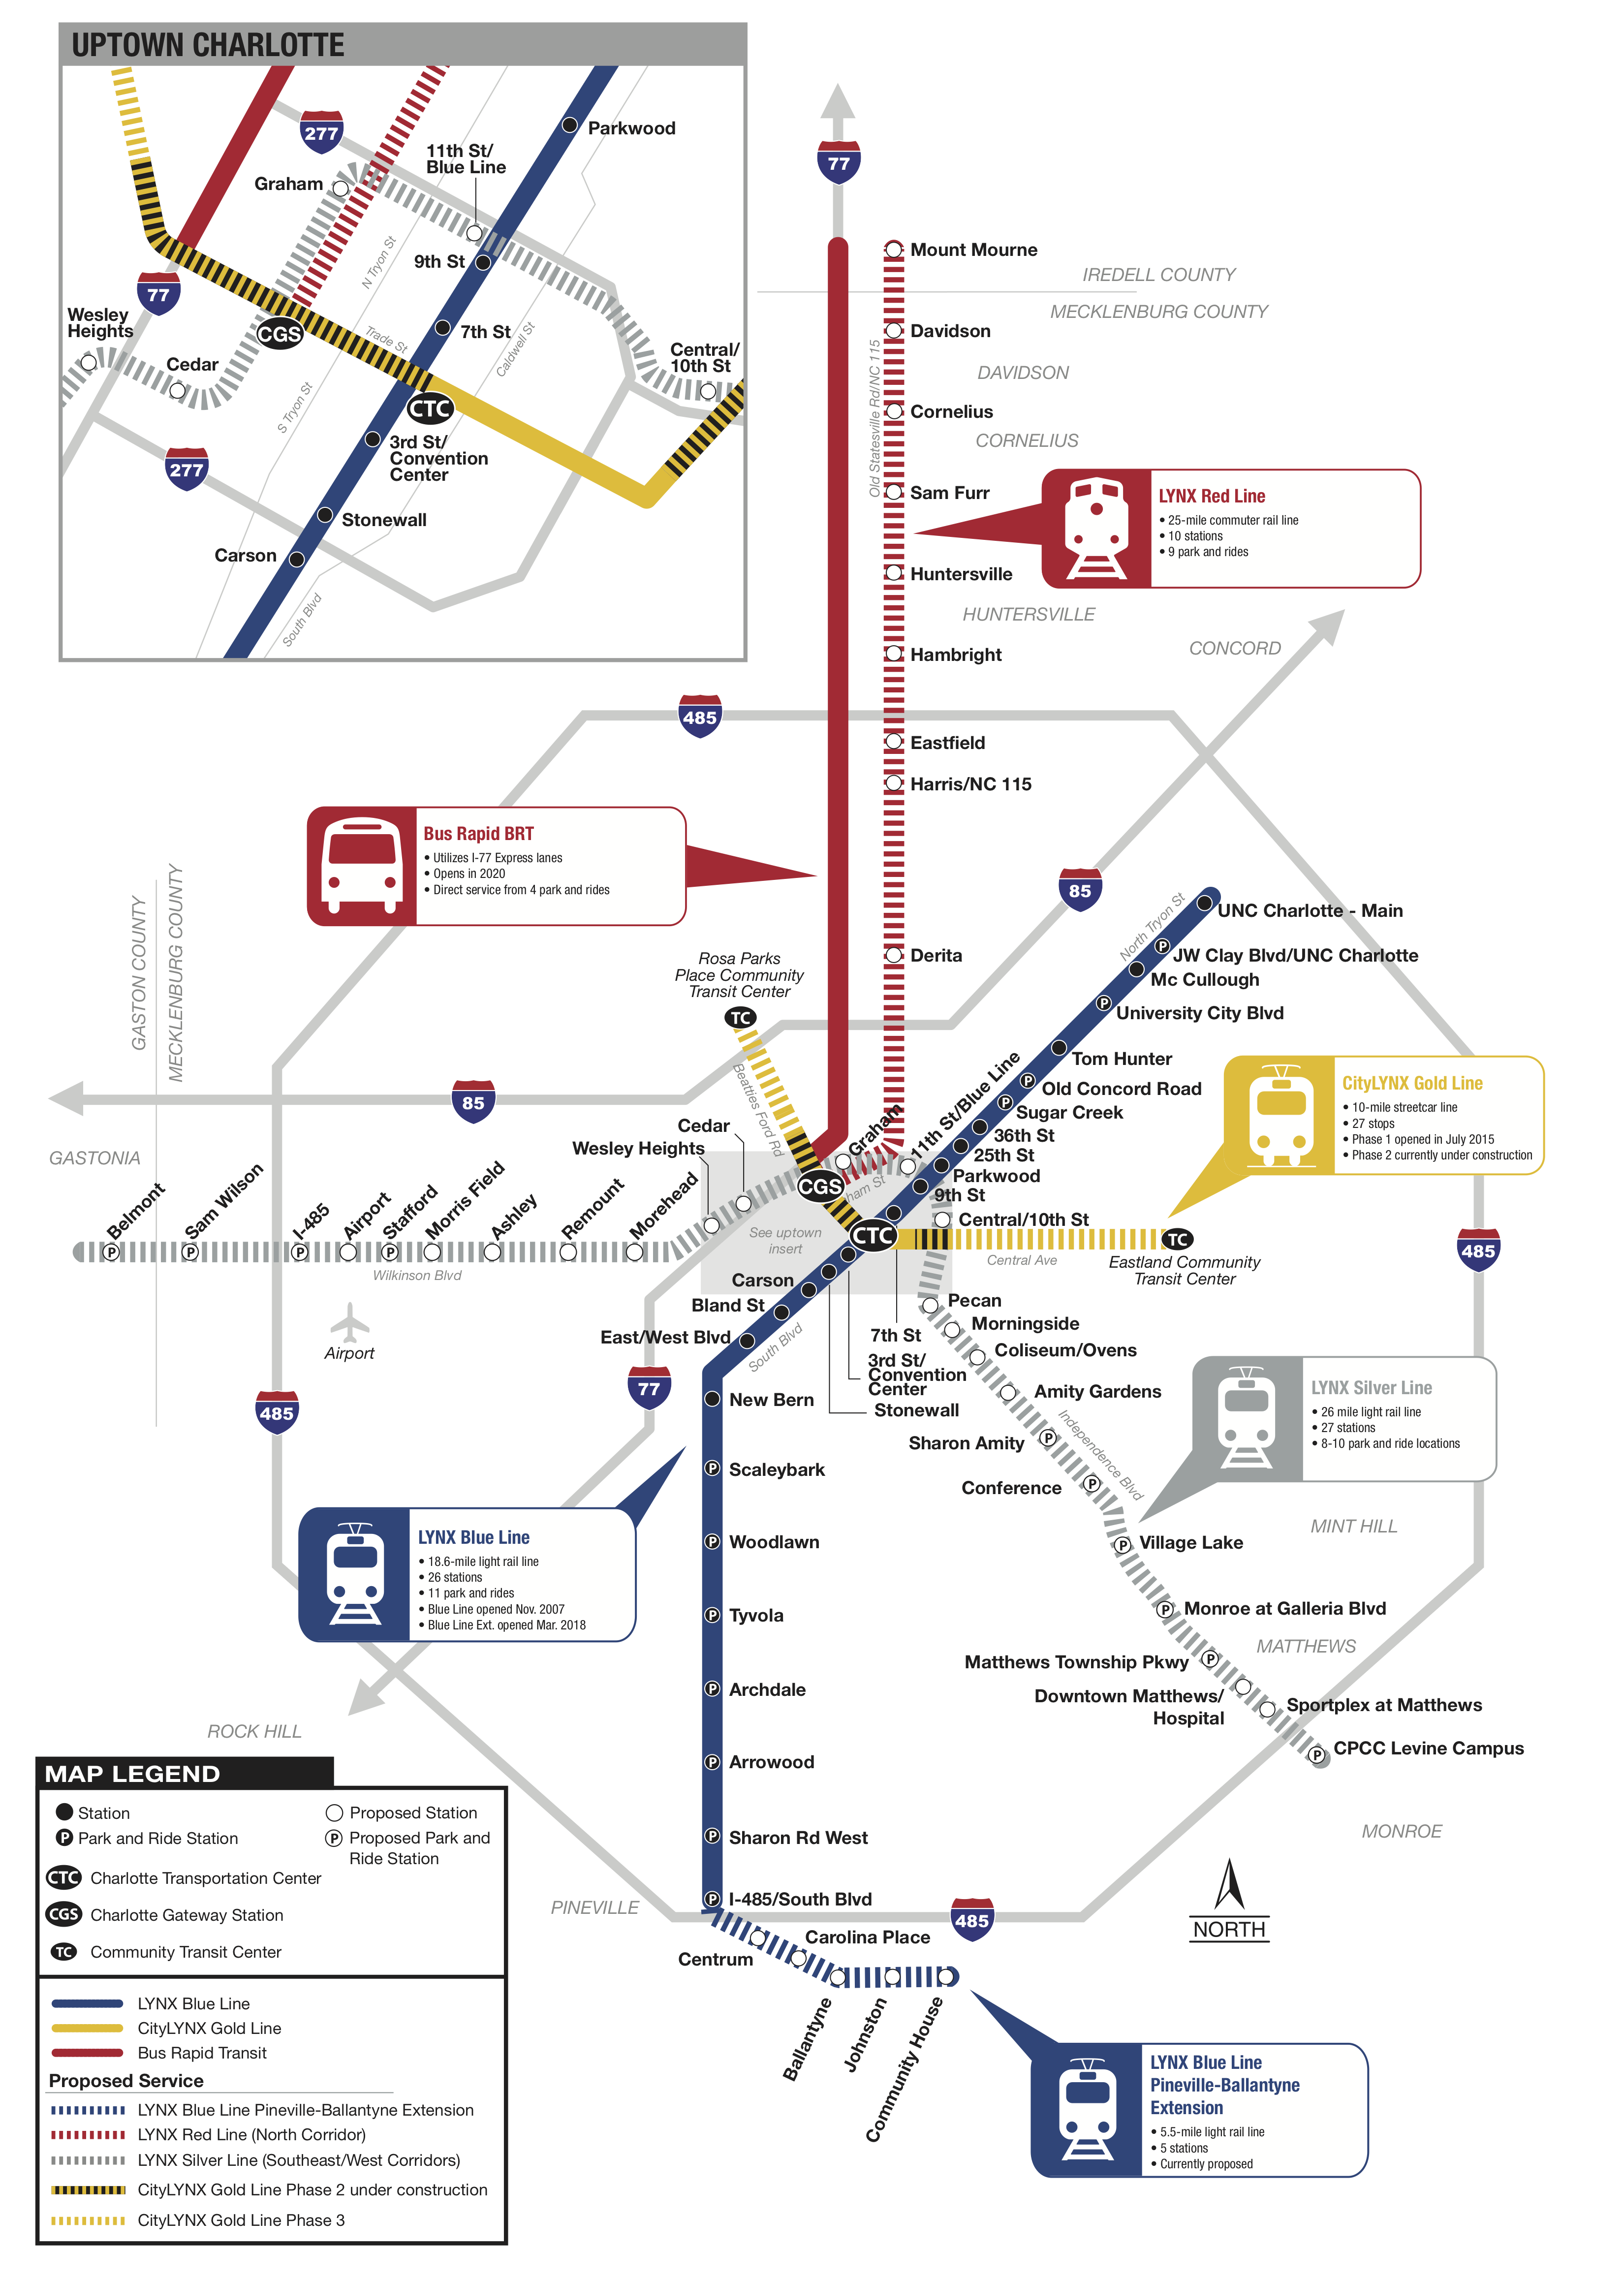 Graphic of LYNX System map with color coded lines indicating LYNX Blue Line and stations, CityLYNX Gold Line, LYNX Red Line (North Corridor) and proposed stations and park and rides, LYNX Silver Line with proposed stations and park and rides, and CityLYNX Gold Line Phases 2 & 3.